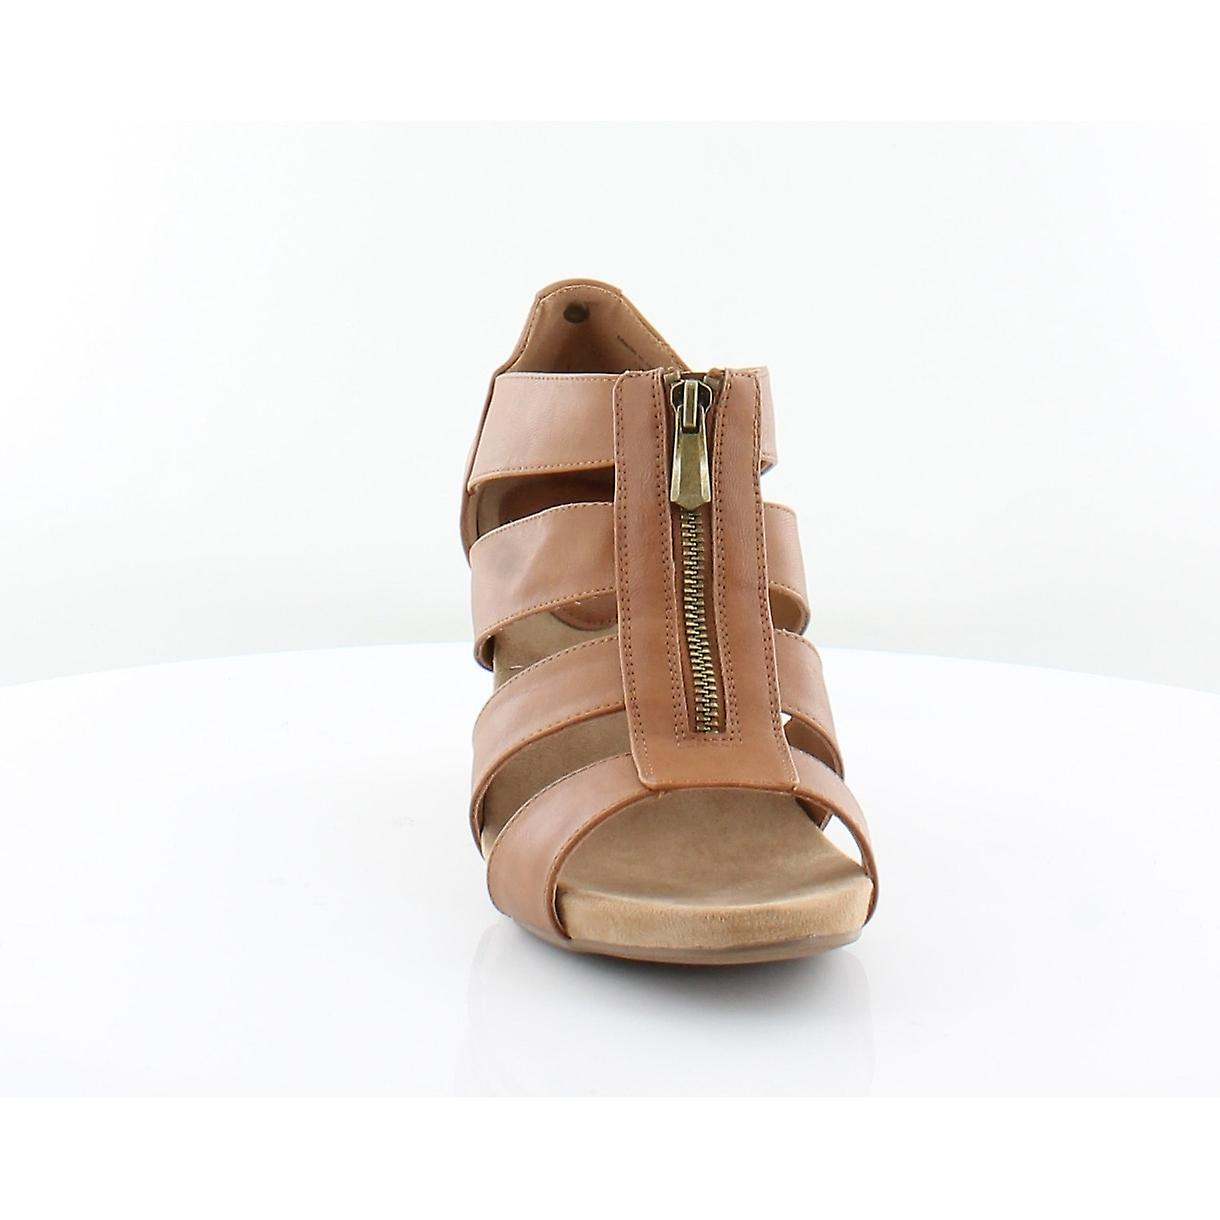 Style & Co. Womens Fettee Open Toe Occasionnels Plate-forme Sandales